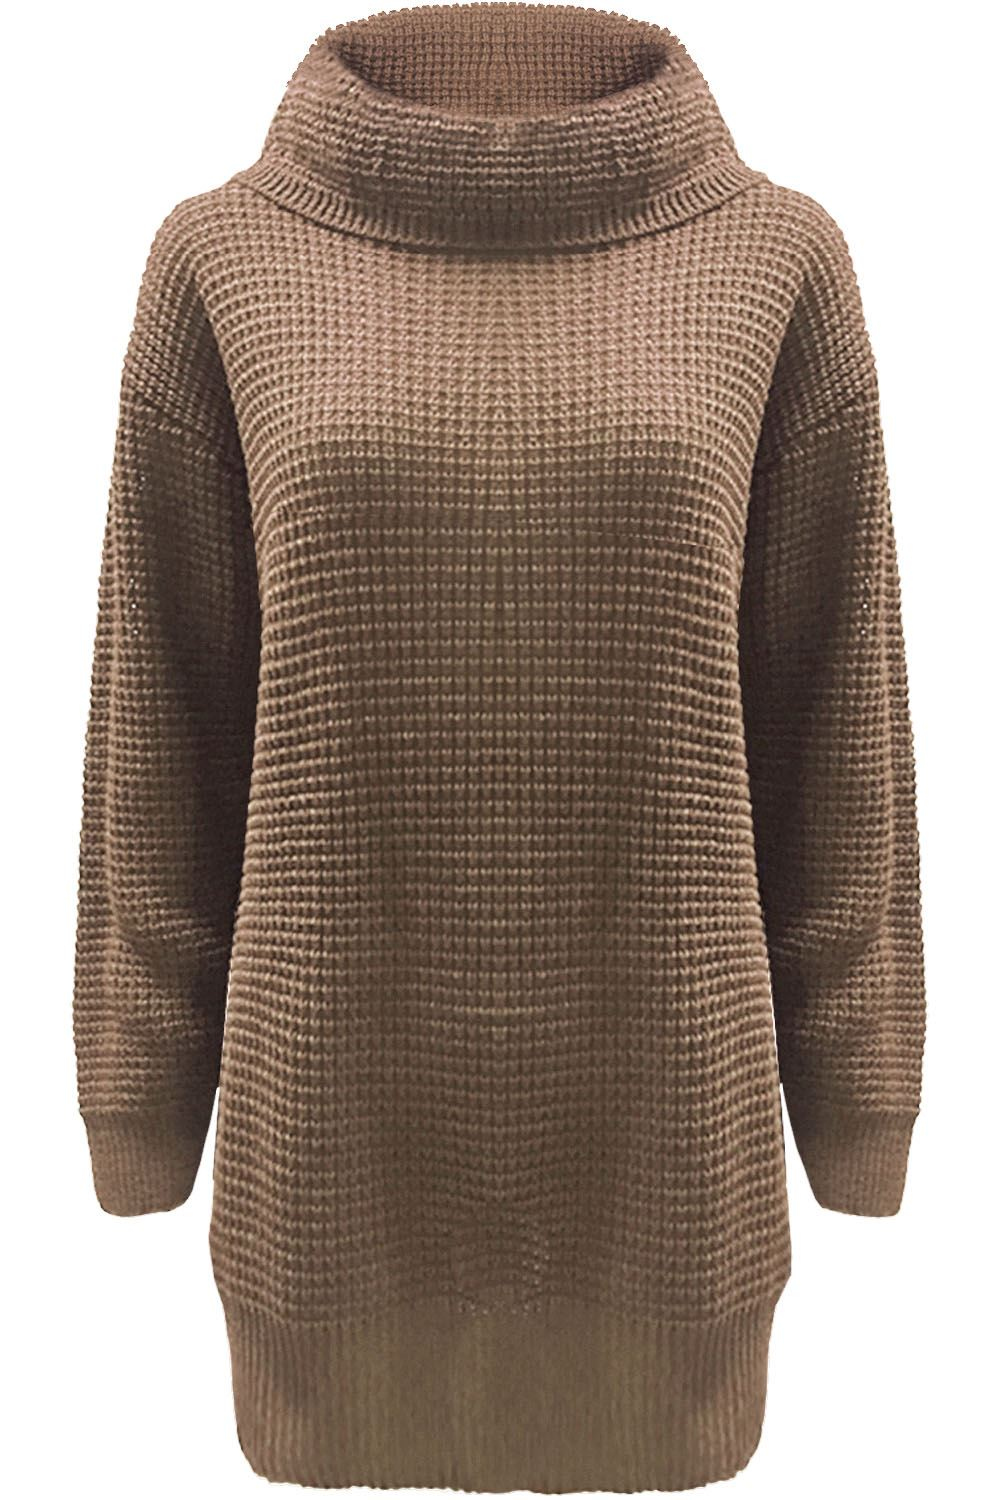 Perfect for any occasion, or season, our chic collection of women's knitwear deserves pride of place in your staple wardrobe. From chunky knit cardigans in longline and cropped styles to warm oversized knitted jumpers and cable knit jumpers to keep you cosy in the winter, find your favourites today.